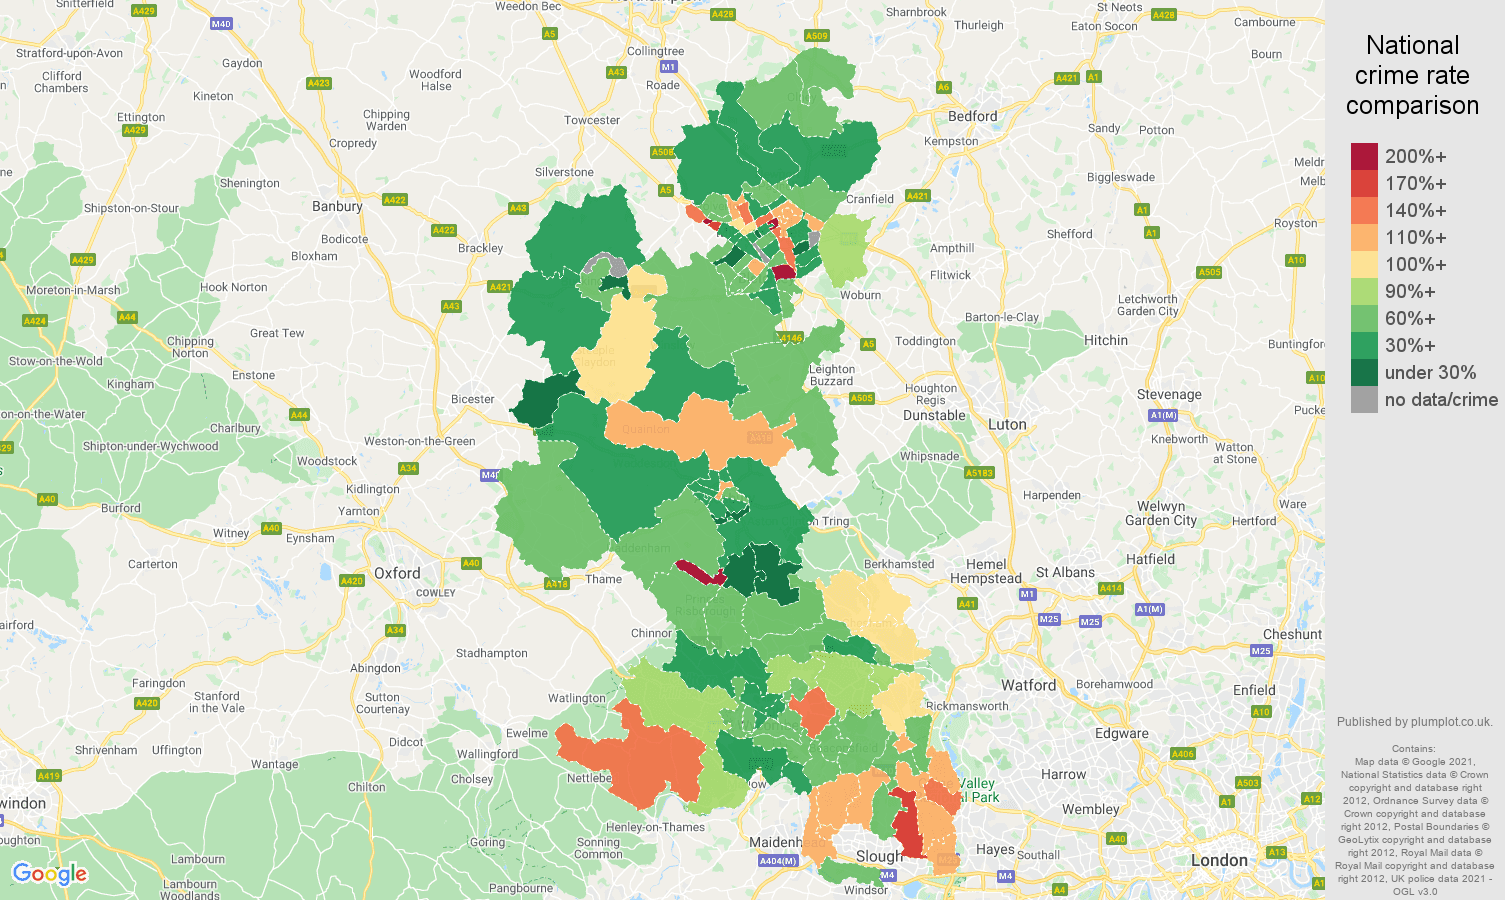 Buckinghamshire burglary crime rate comparison map